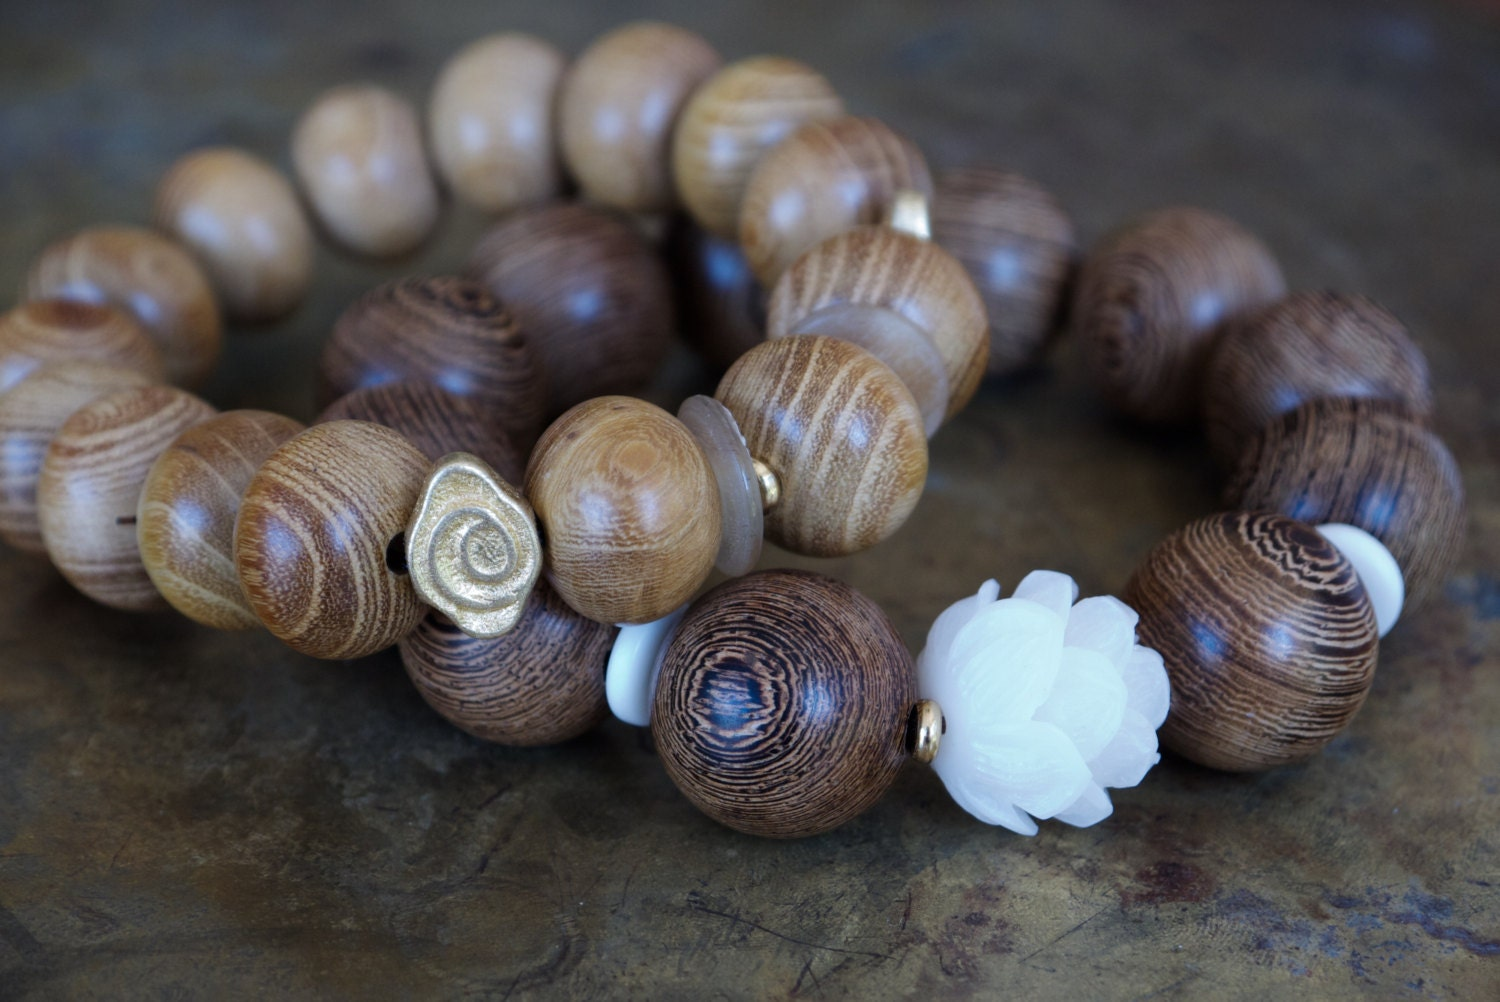 yoga black jewelry bracelets matata buddha natural matte bracelet products men onyx prayer beads new wooden meditation beaded bead women wood